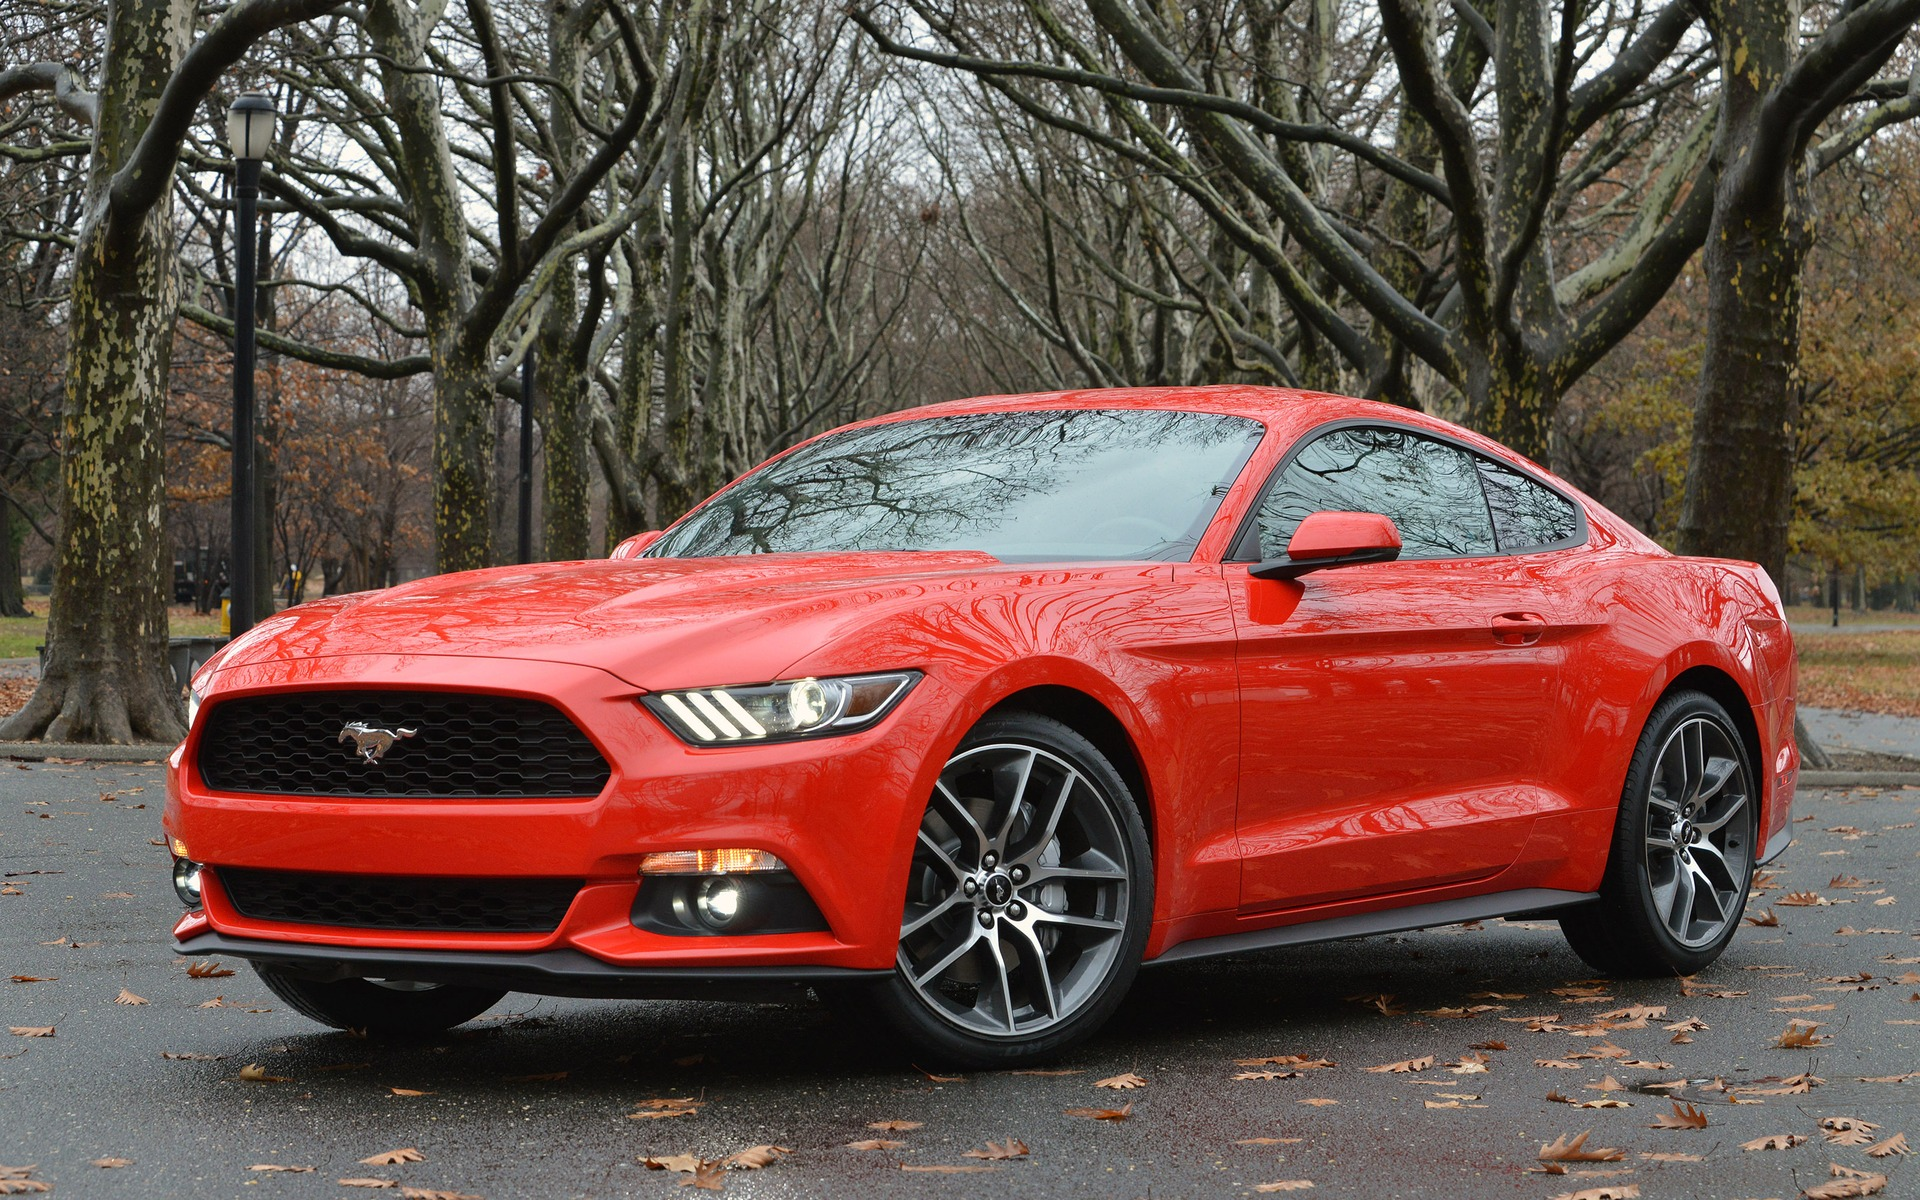 Top 10 Nicest Ford Mustangs